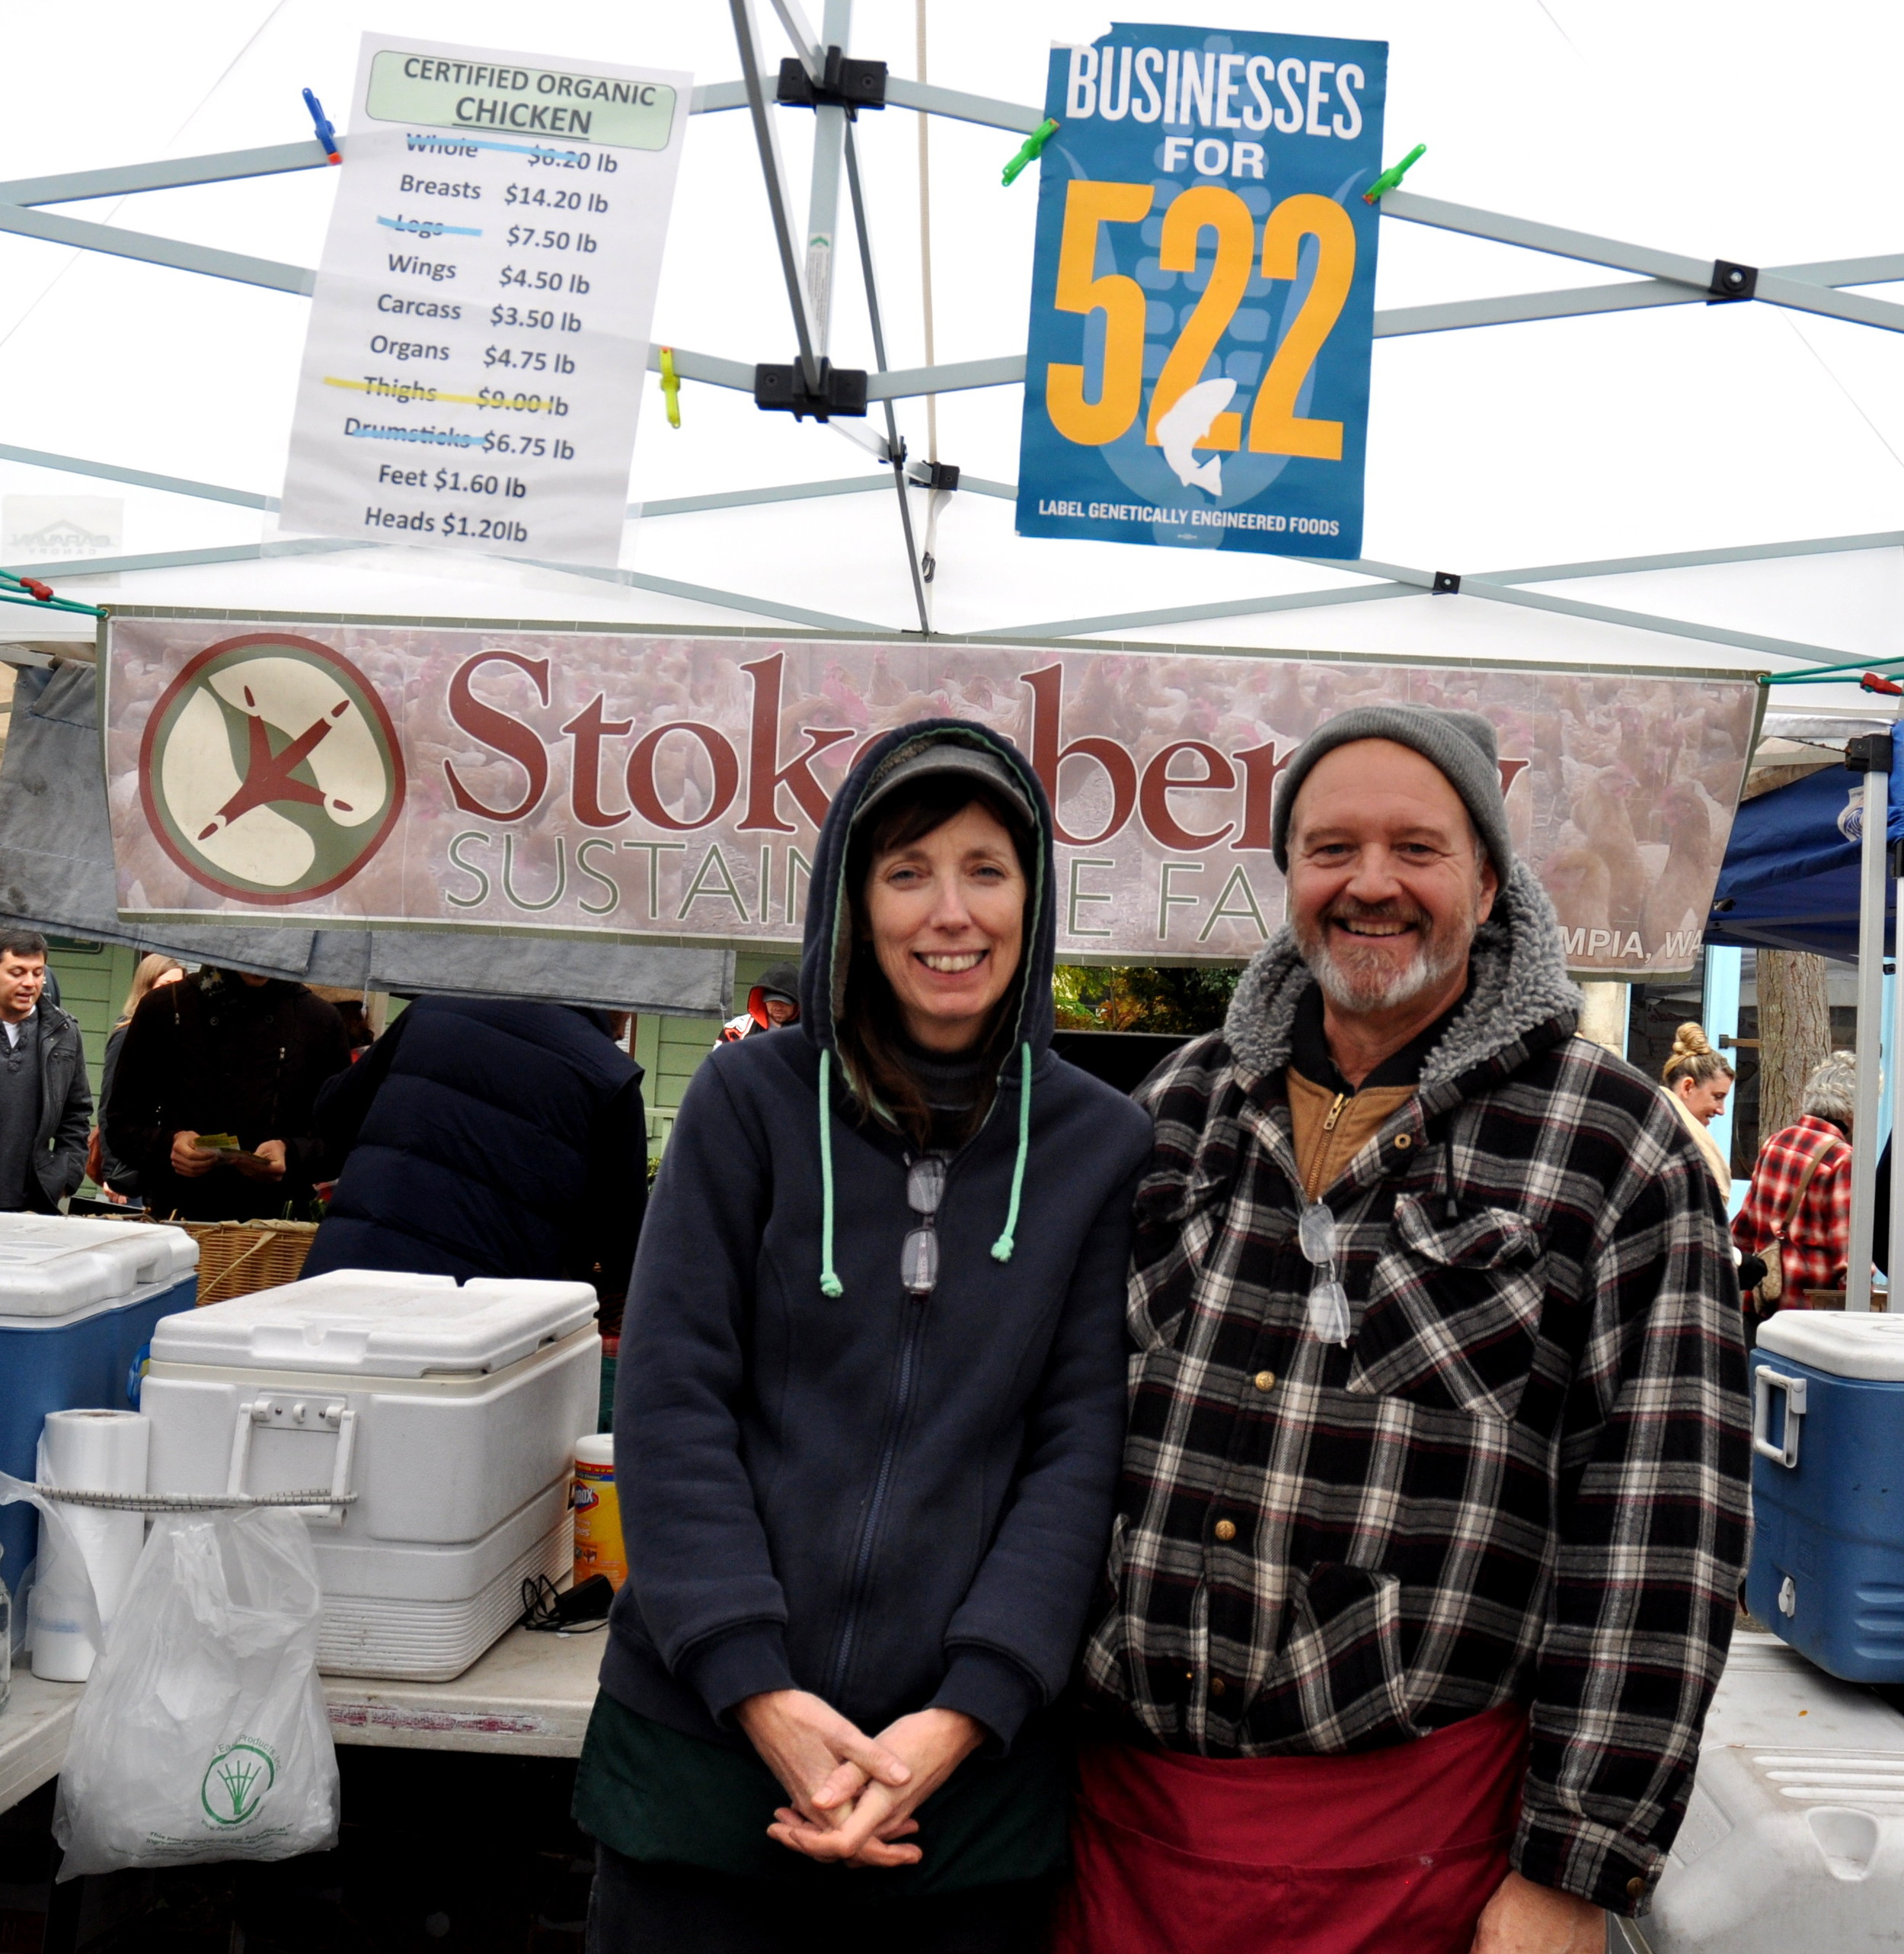 Janelle & Jerry Stokesberry of Stokesberry Sustainable Farm support I-522. Photo copyright 2013 by Zachary D. Lyons.